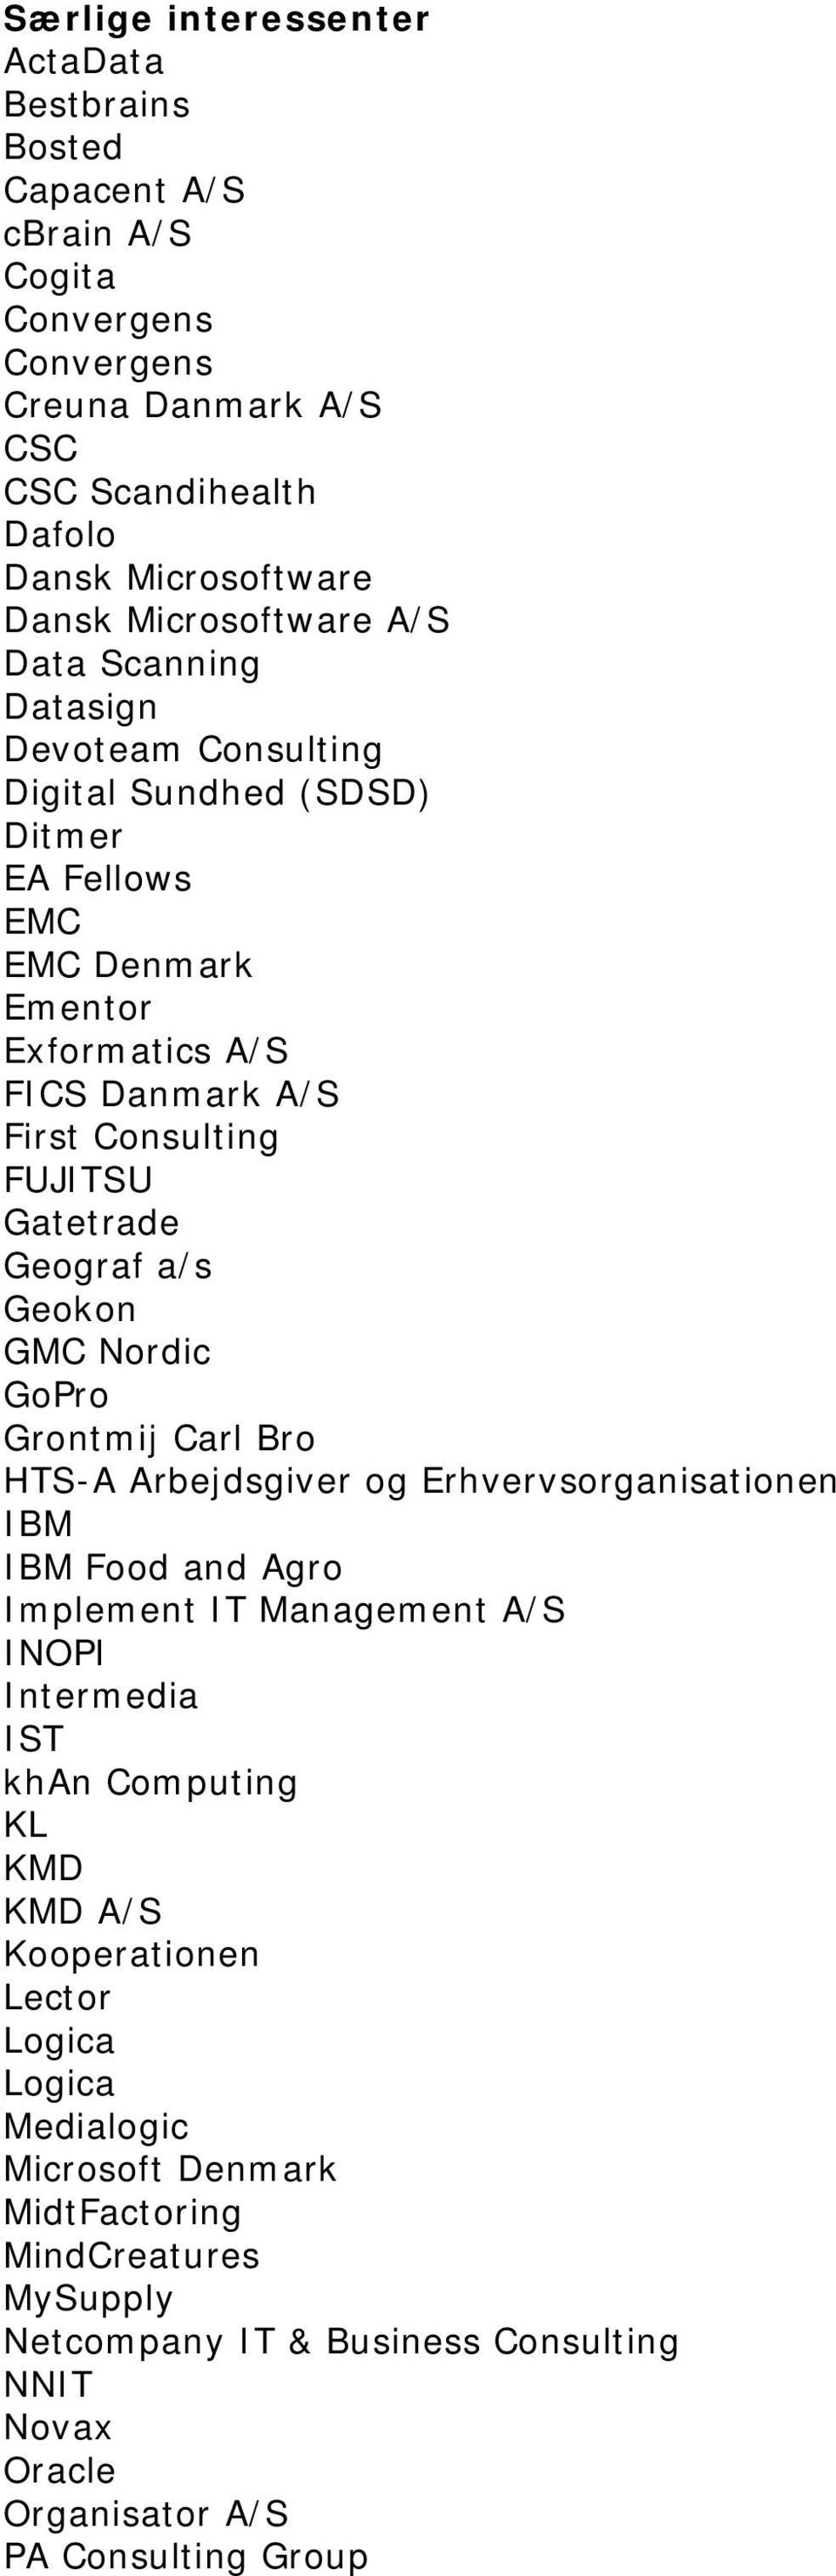 a/s Geokon GMC Nordic GoPro Grontmij Carl Bro HTS-A Arbejdsgiver og Erhvervsorganisationen IBM IBM Food and Agro Implement IT Management A/S INOPI Intermedia IST khan Computing KL KMD KMD